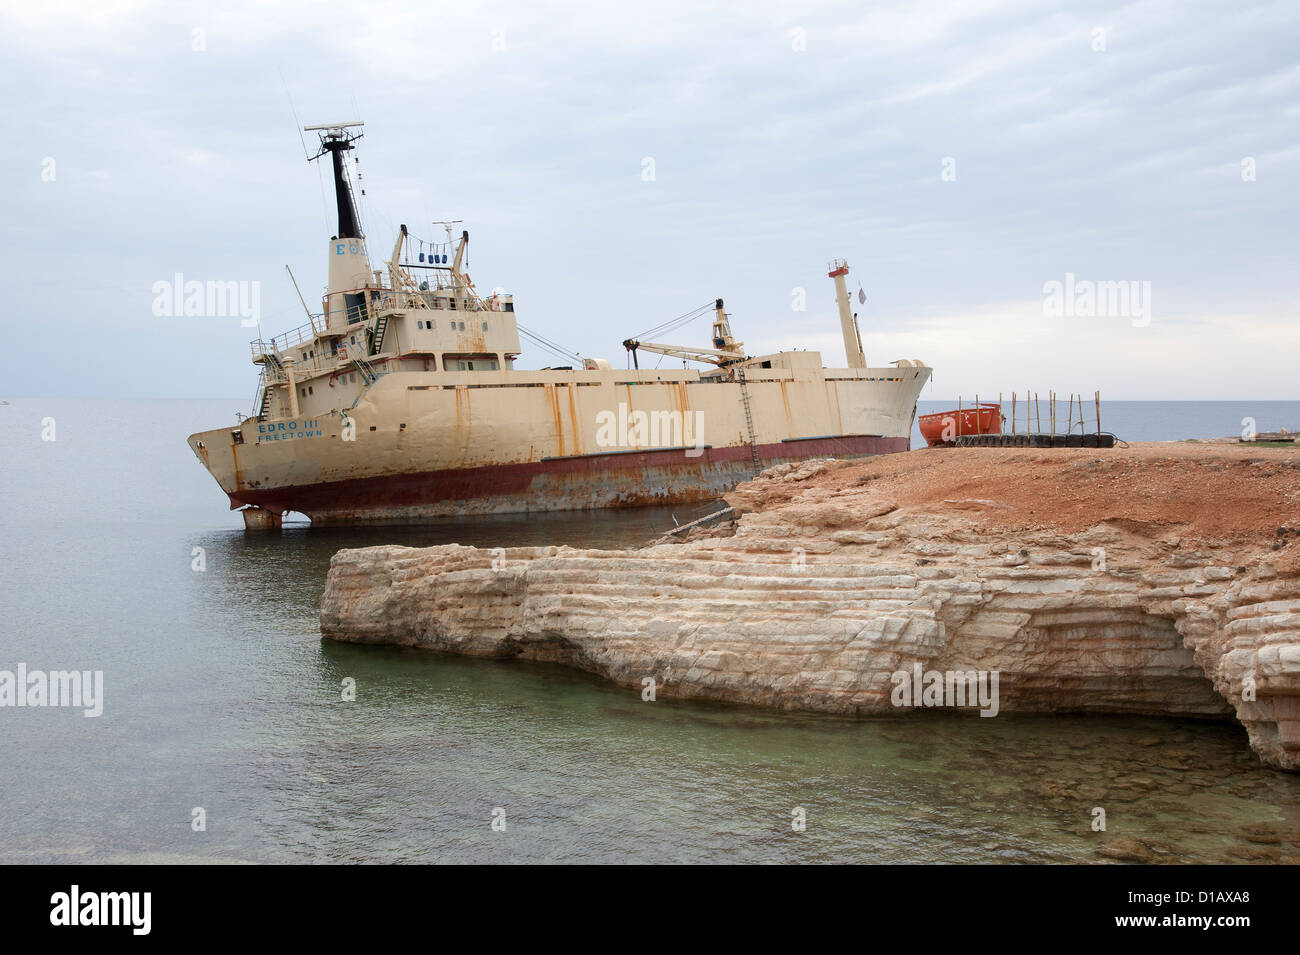 Edro III cargo ship aground close to the Sea Caves at Coral Bay near Paphos Cyprus - Stock Image